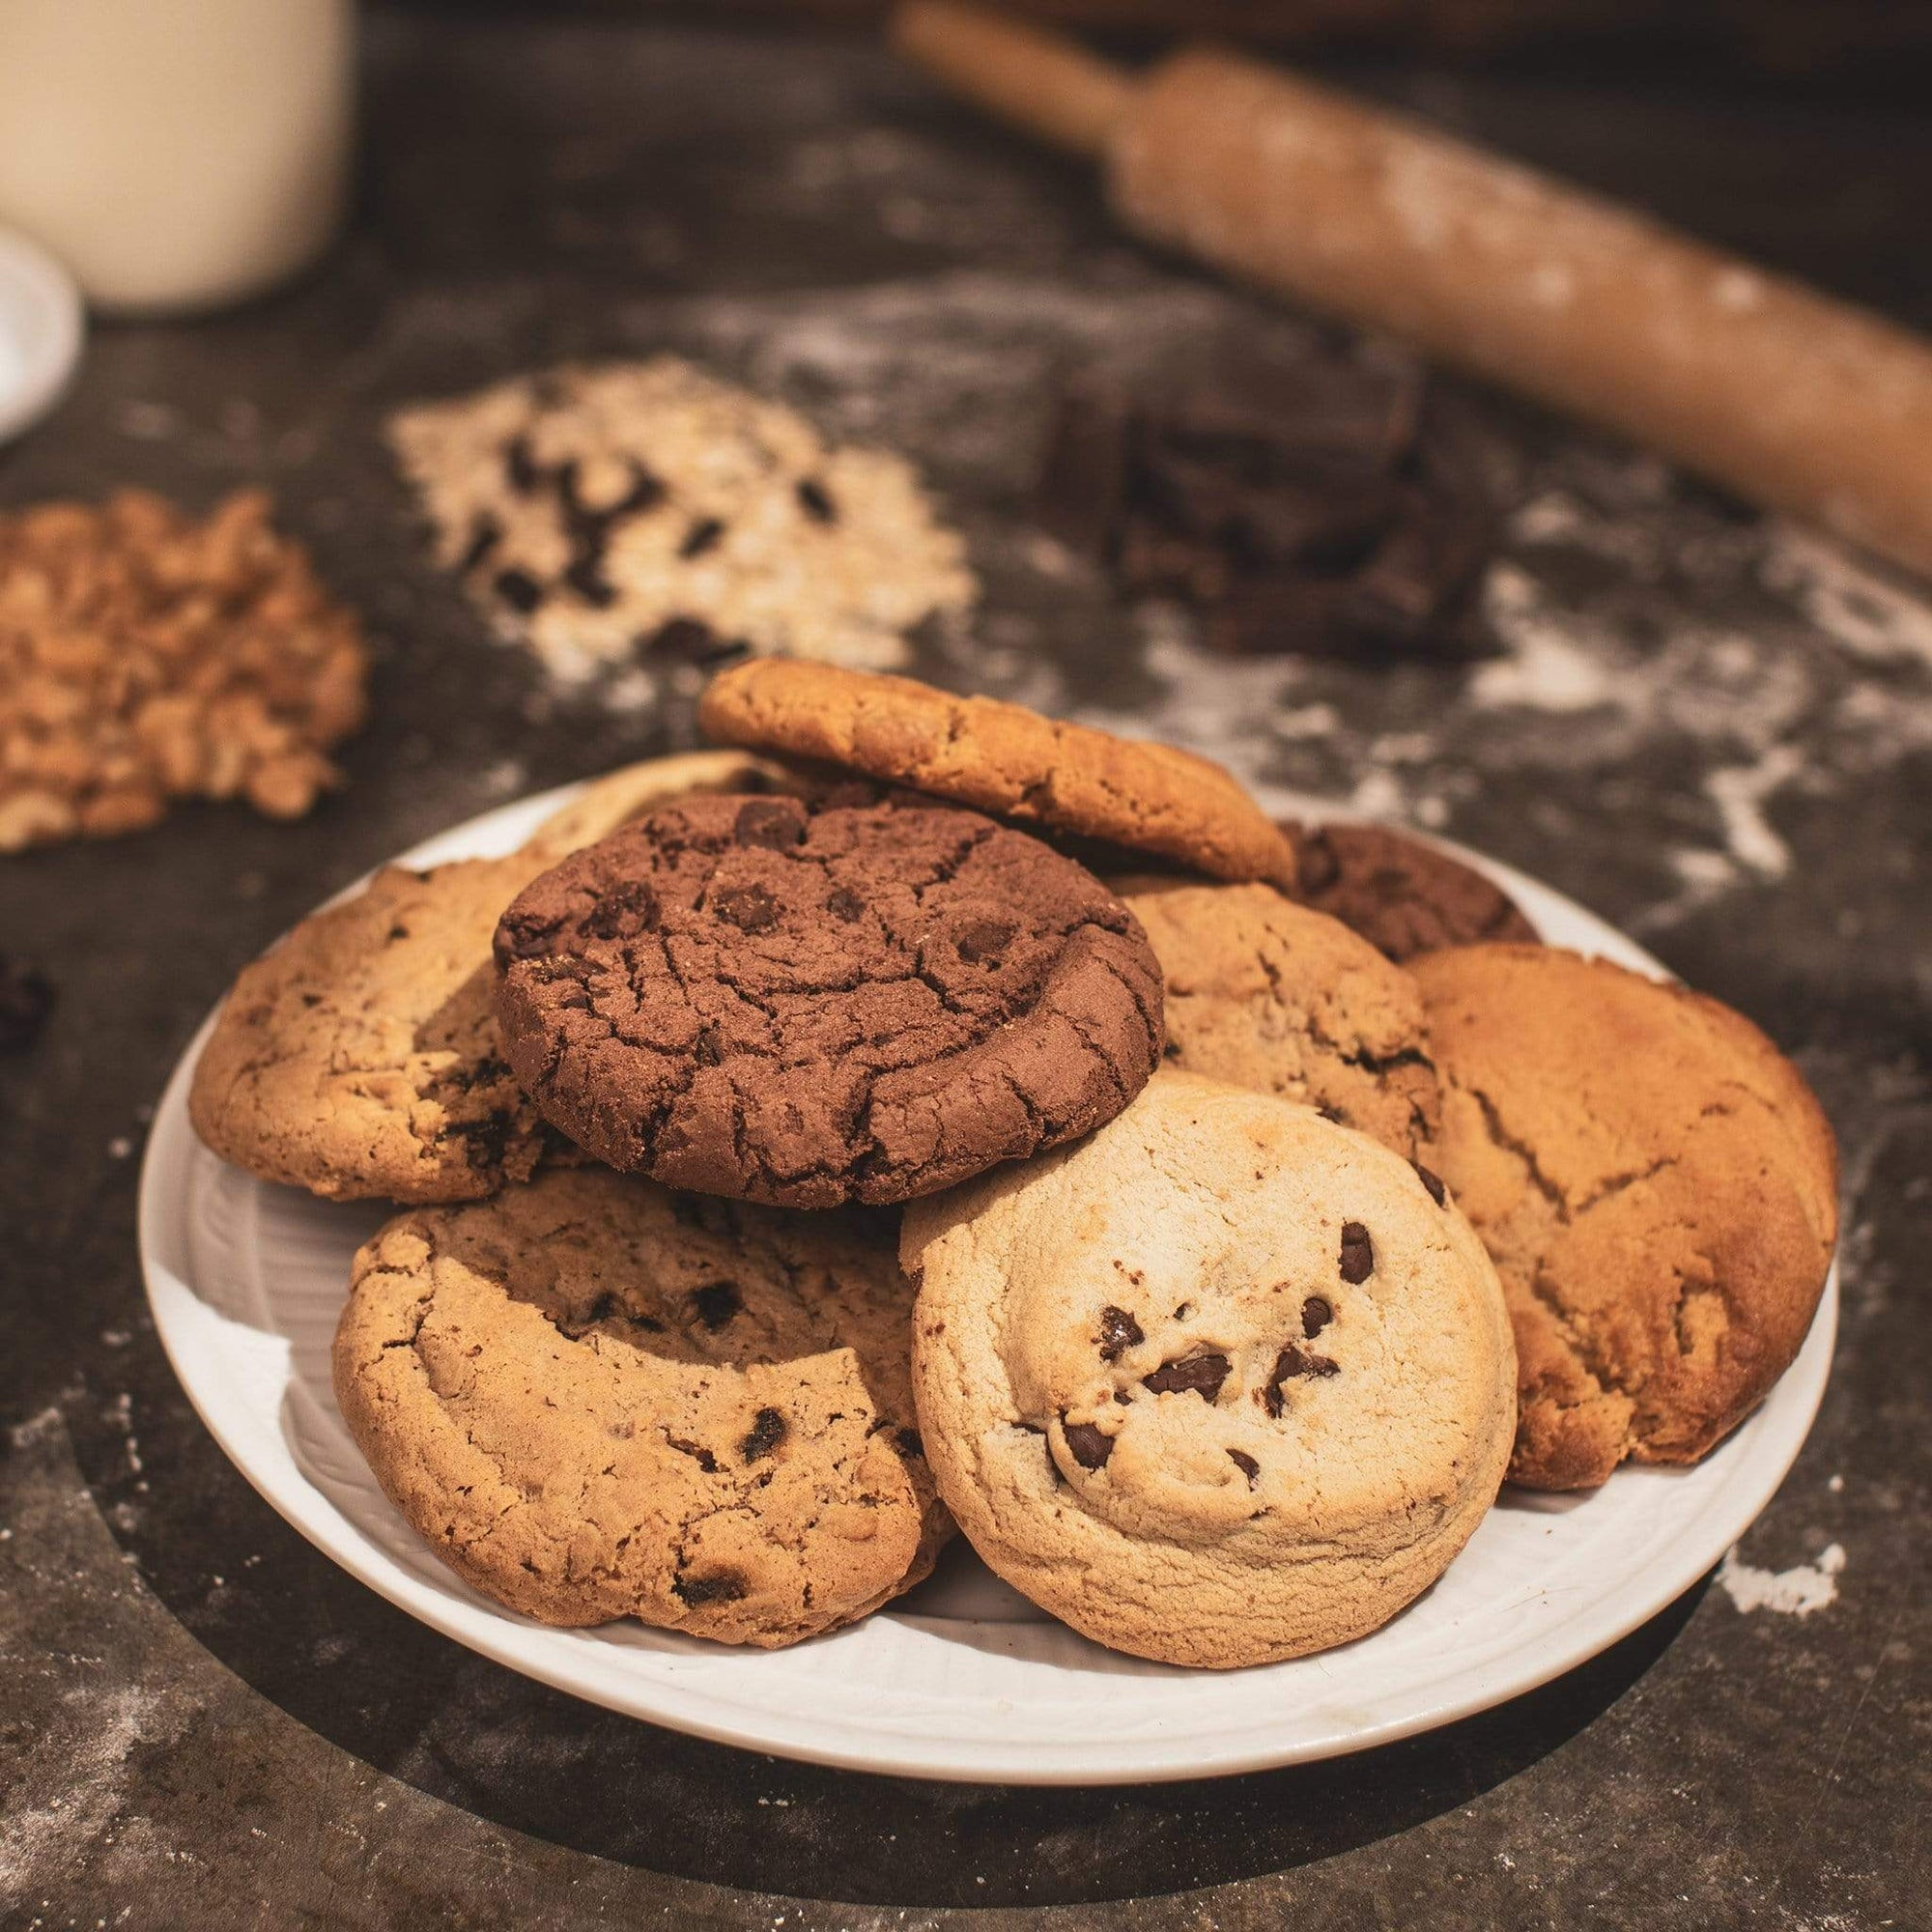 Double Chocolate cookies (Gluten Free) 12-Pack